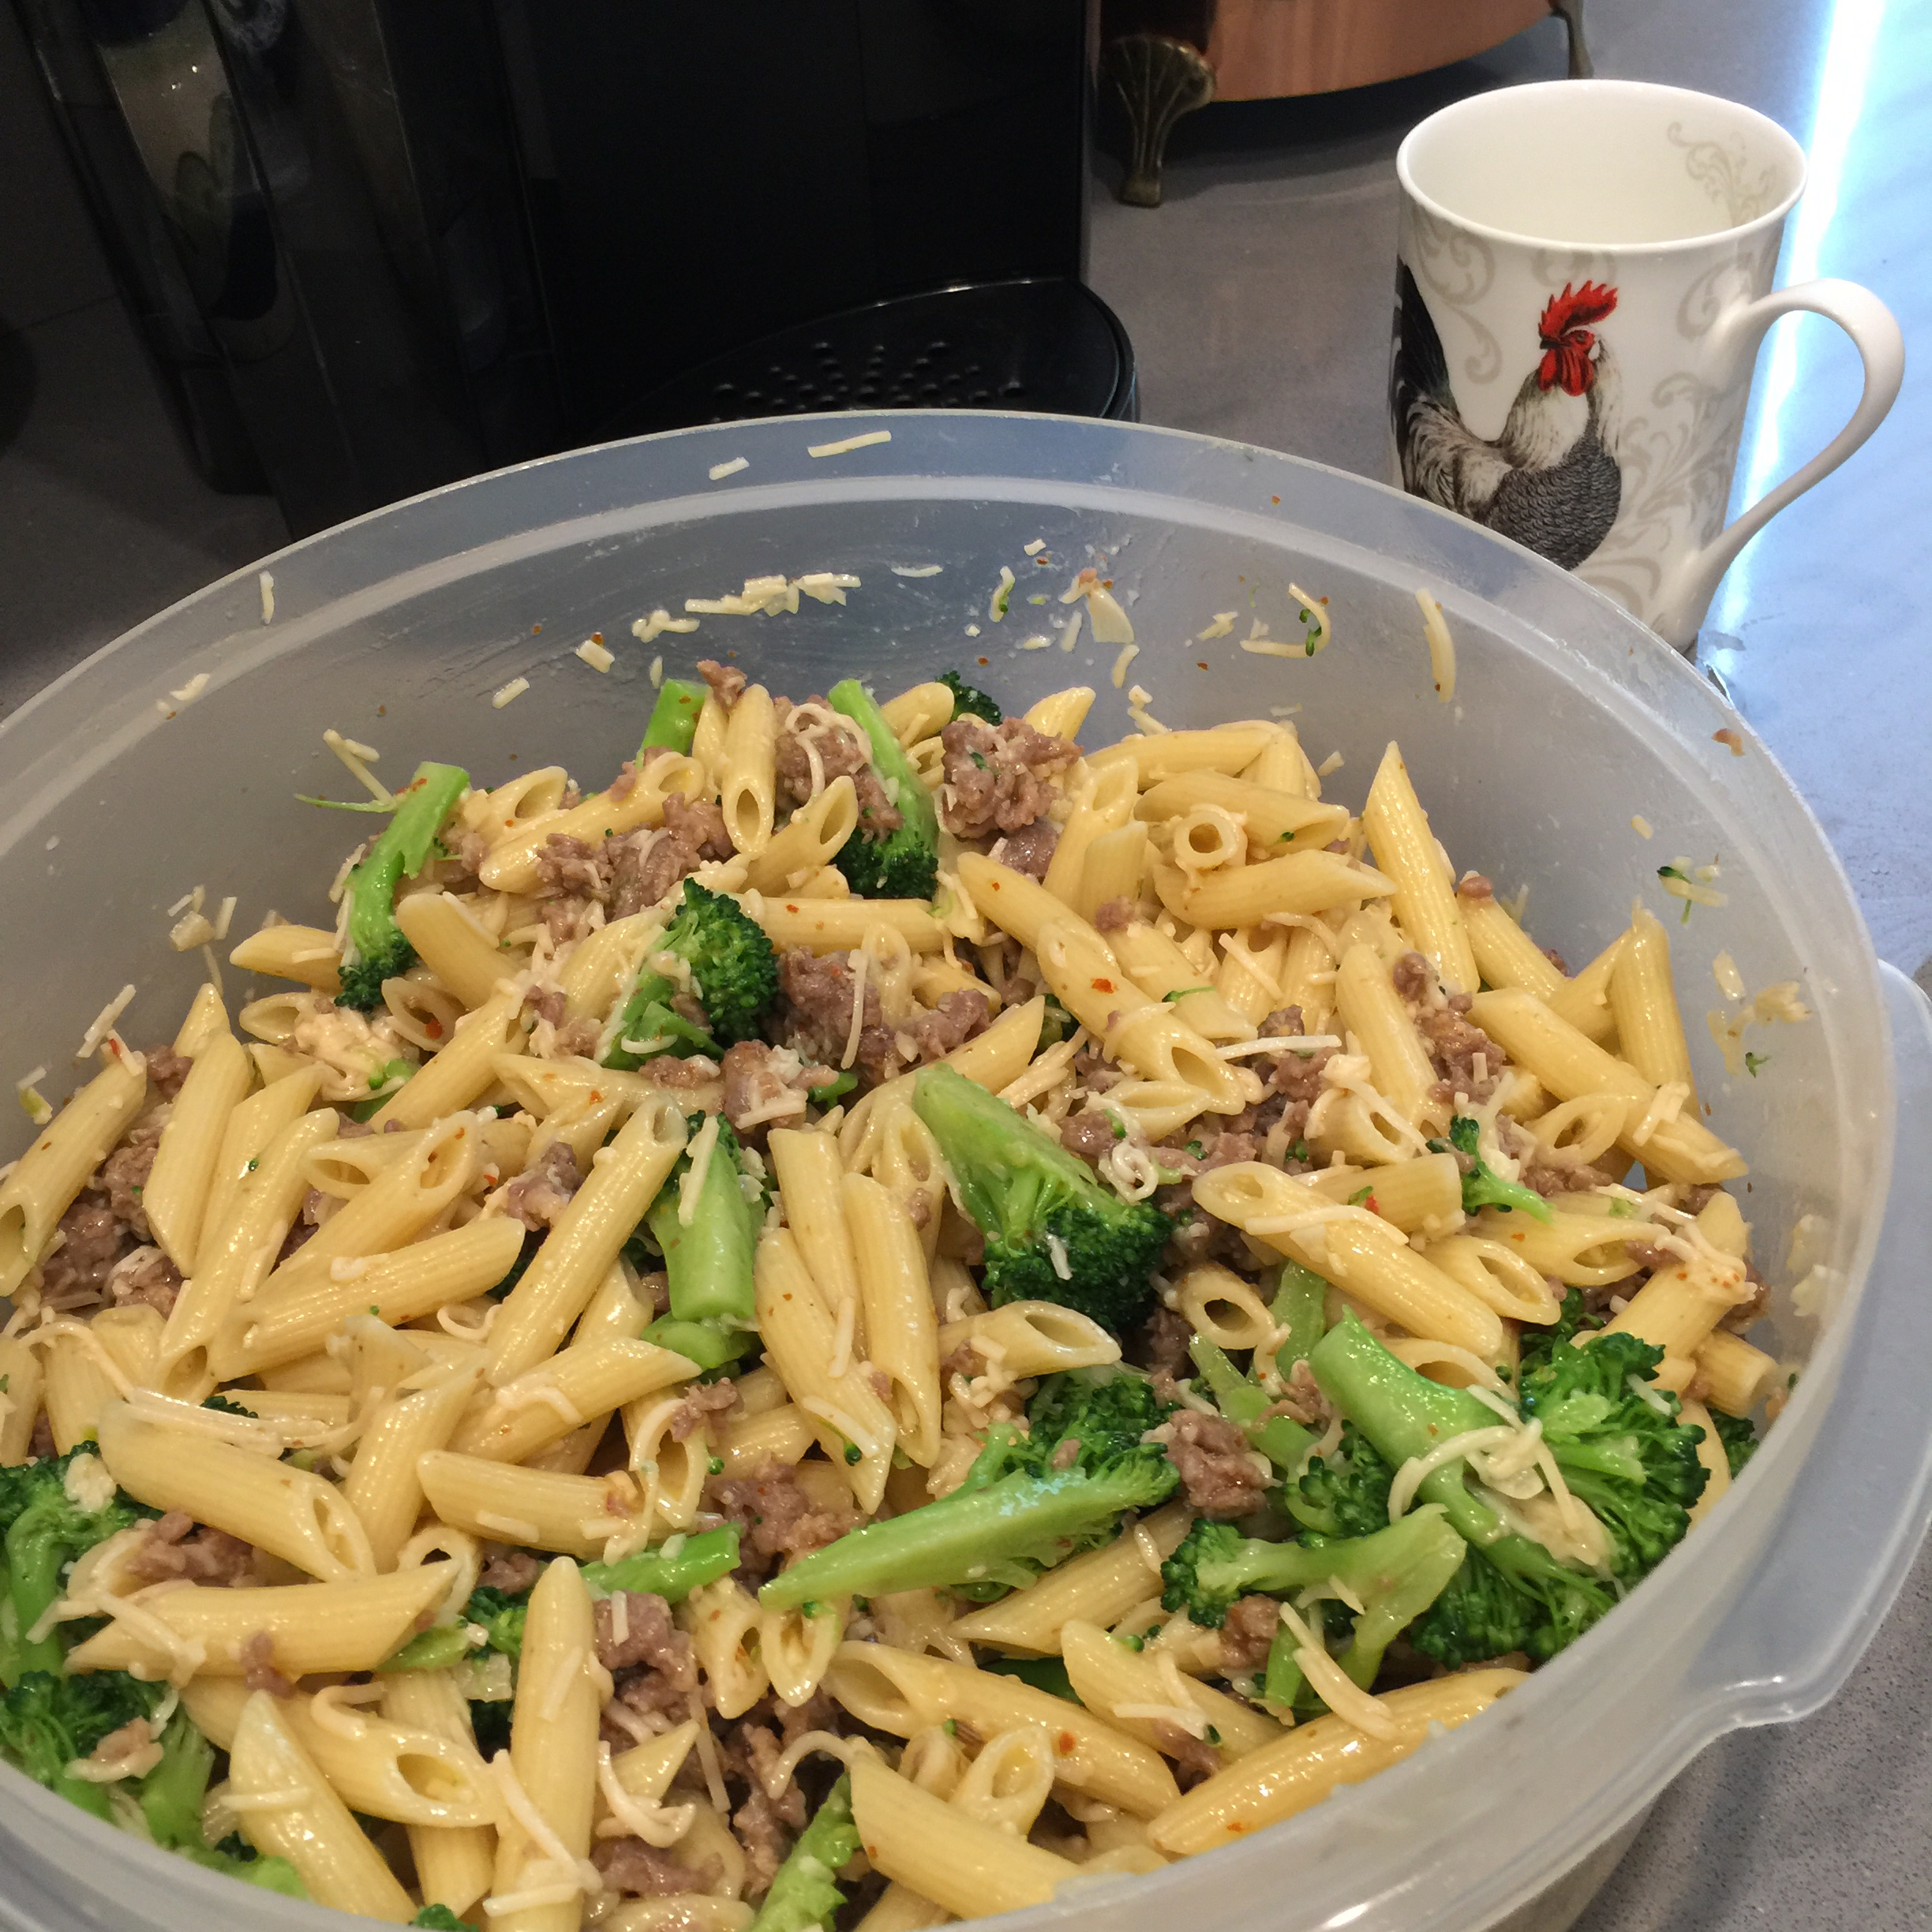 Penne with Sausage and Broccoli Rabe